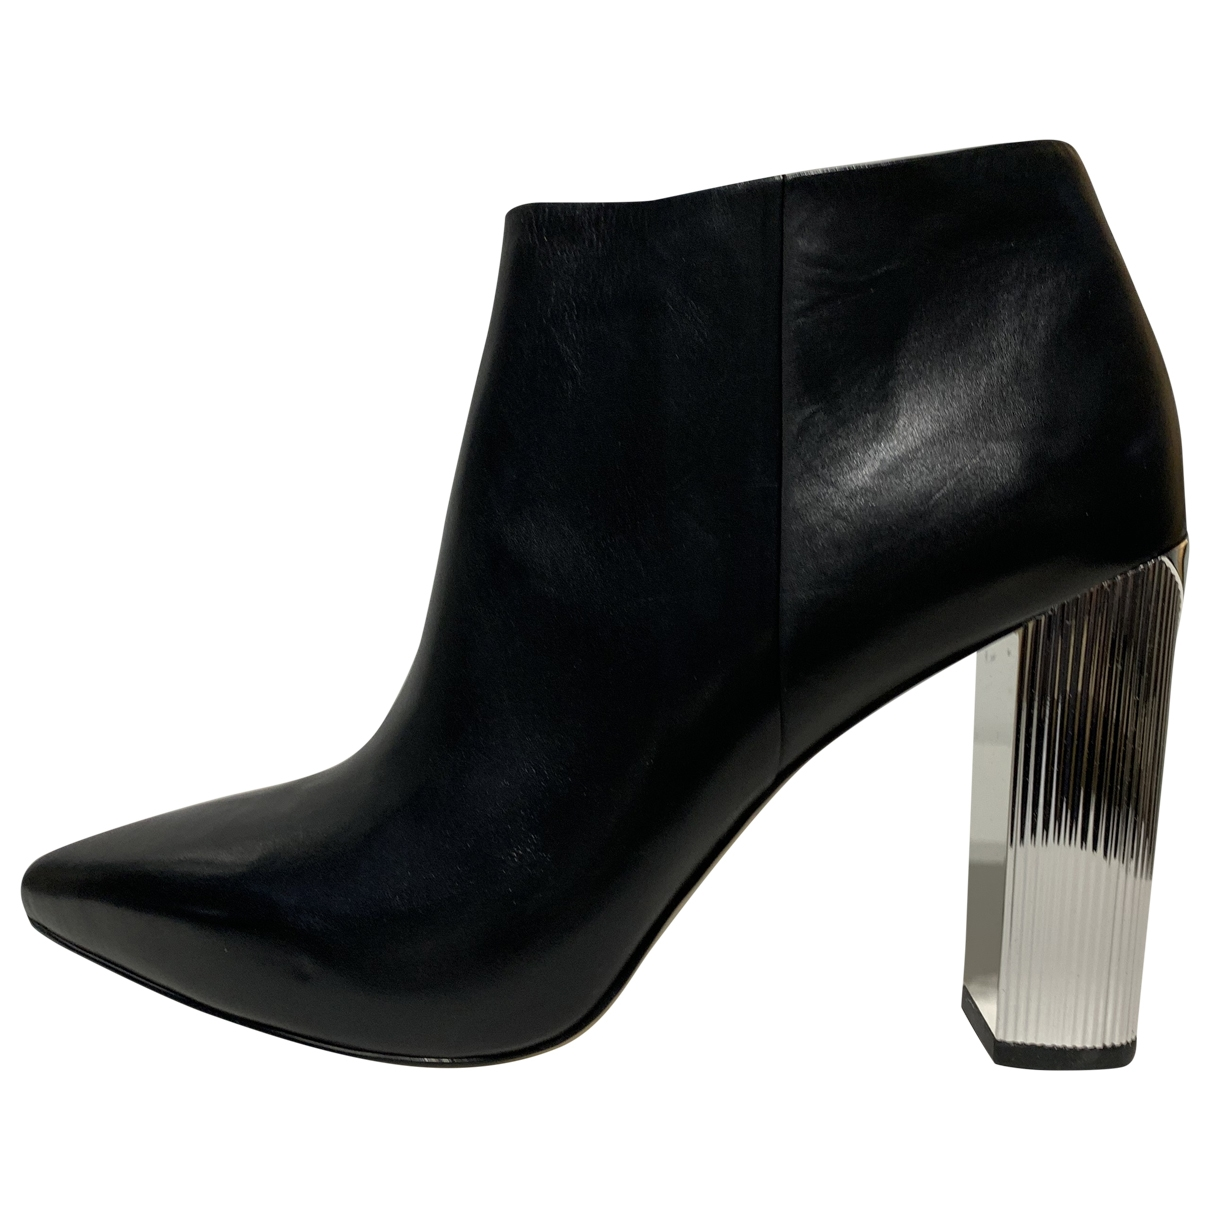 Michael Kors \N Black Leather Ankle boots for Women 9 US